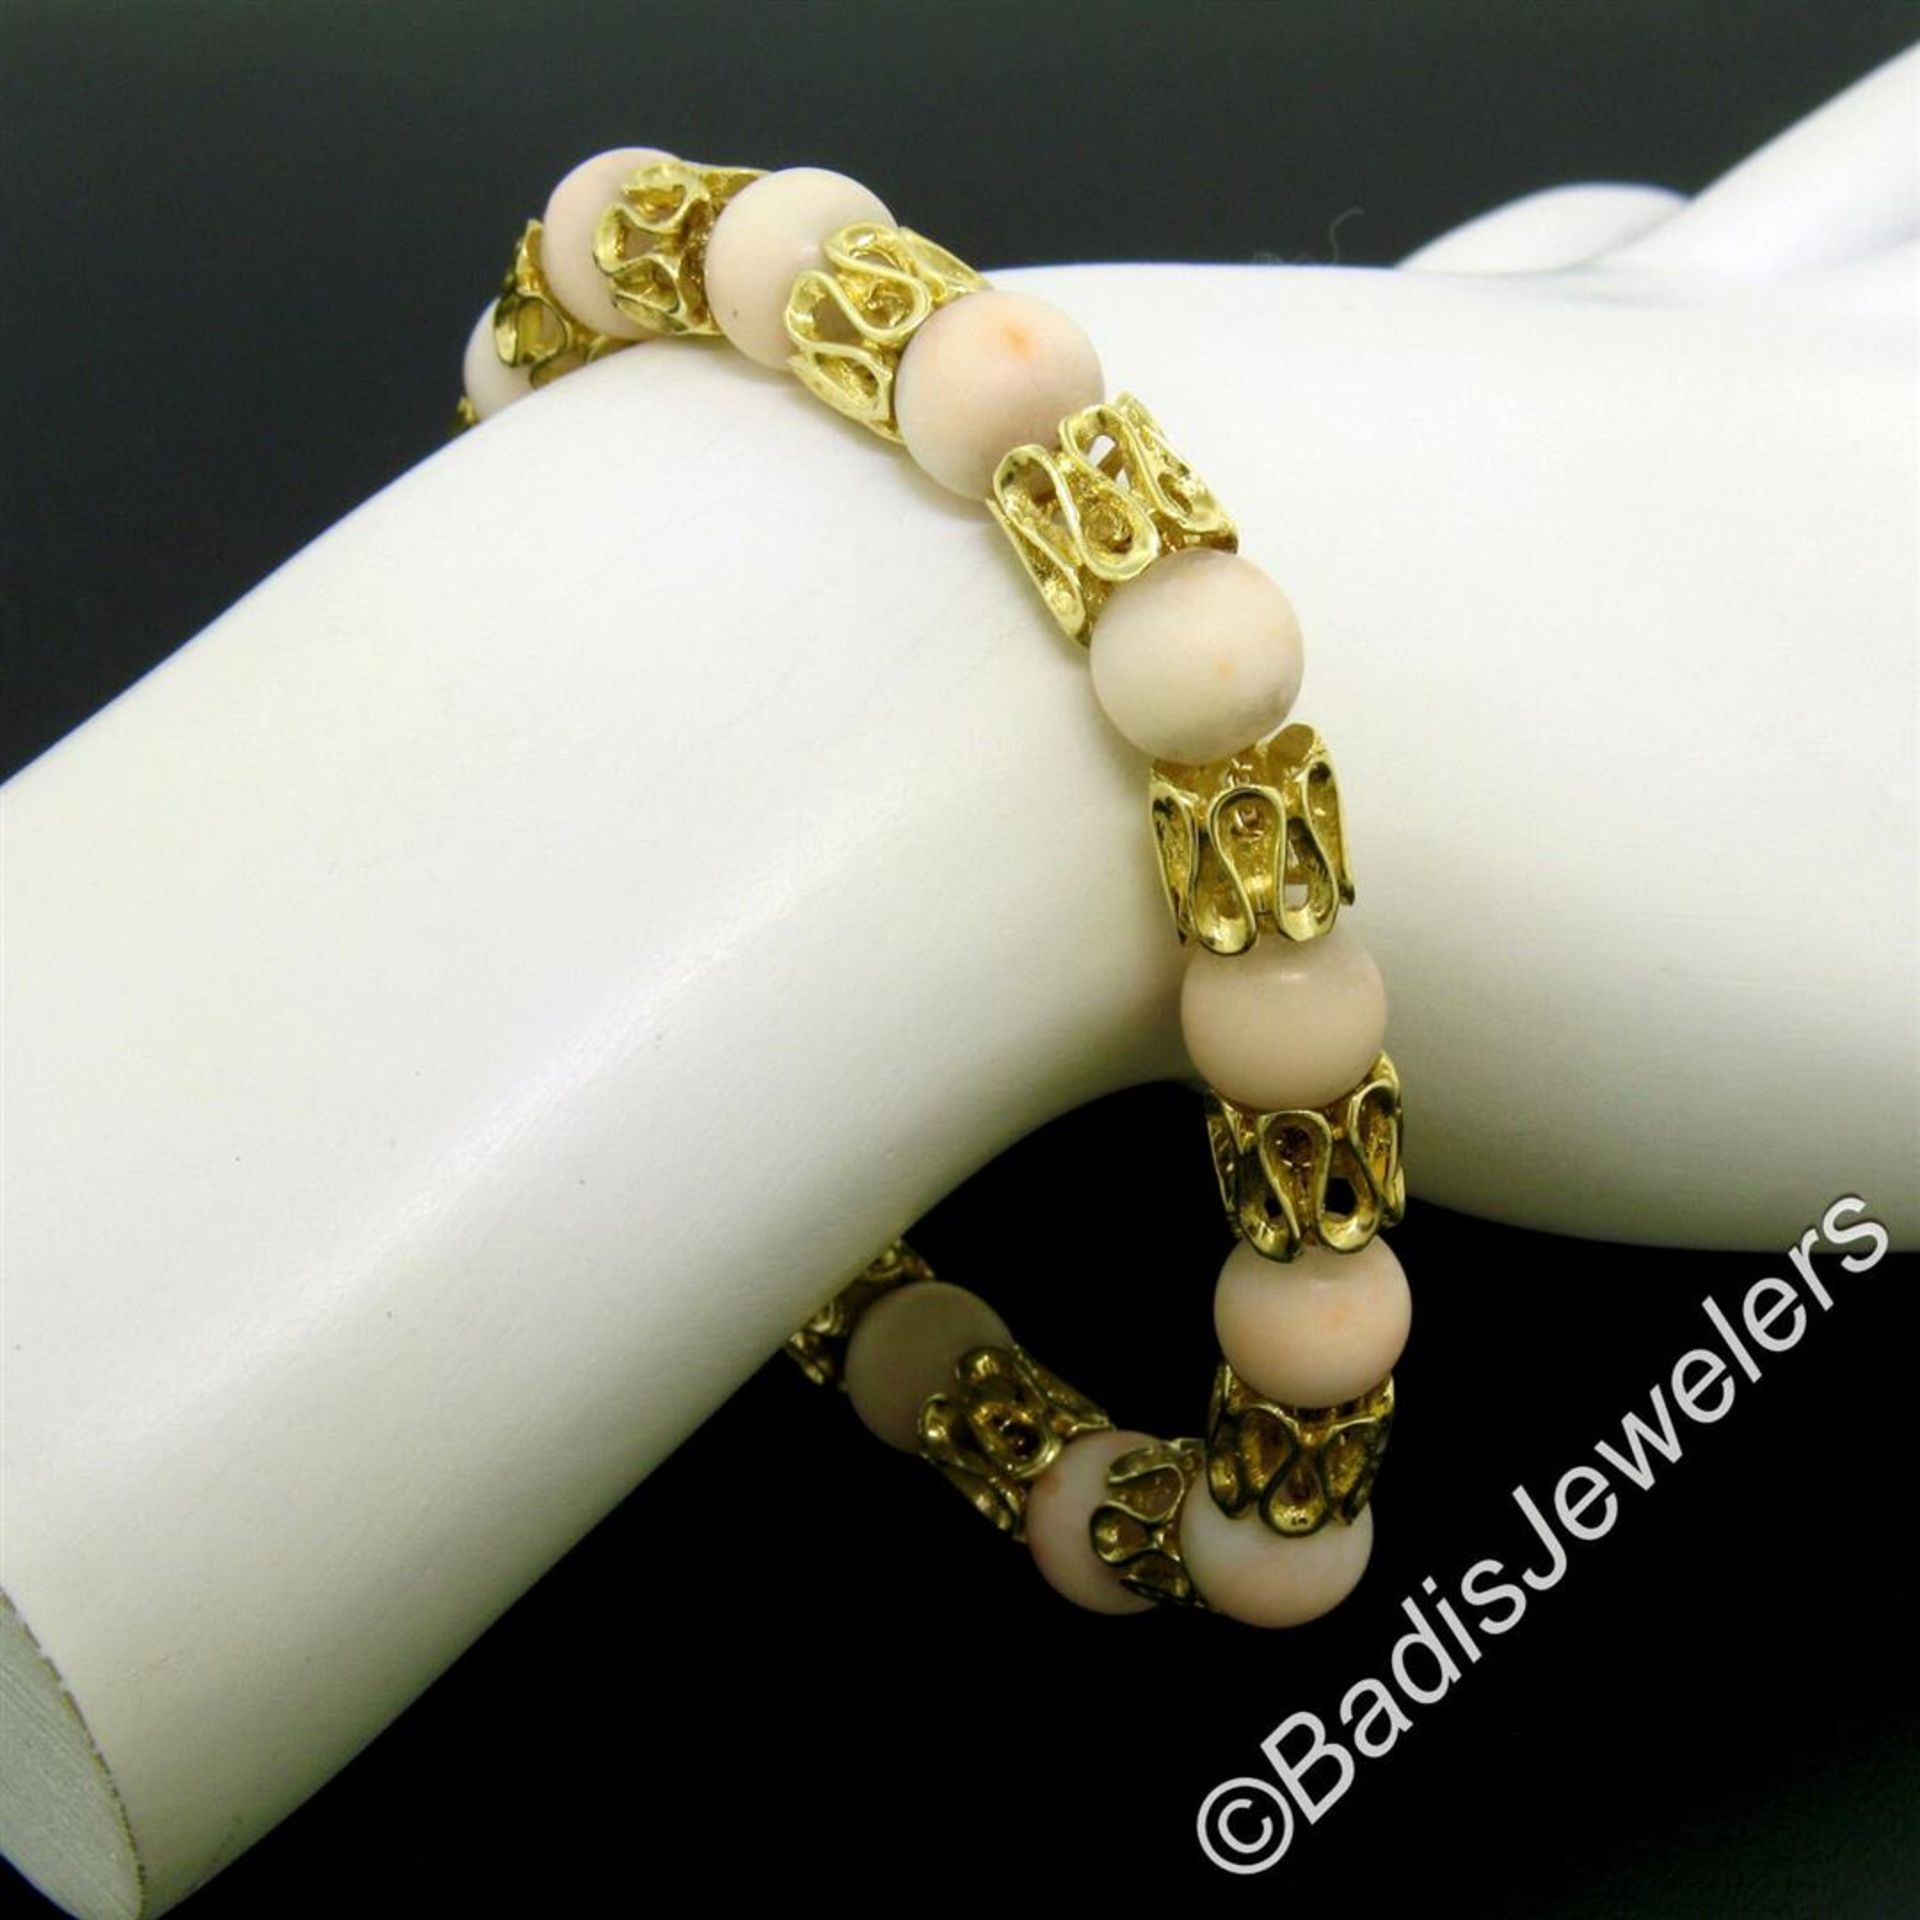 Vintage 18kt Yellow Gold Twisted Link Bracelet w/ Matching Angel Skin Coral Bead - Image 4 of 6